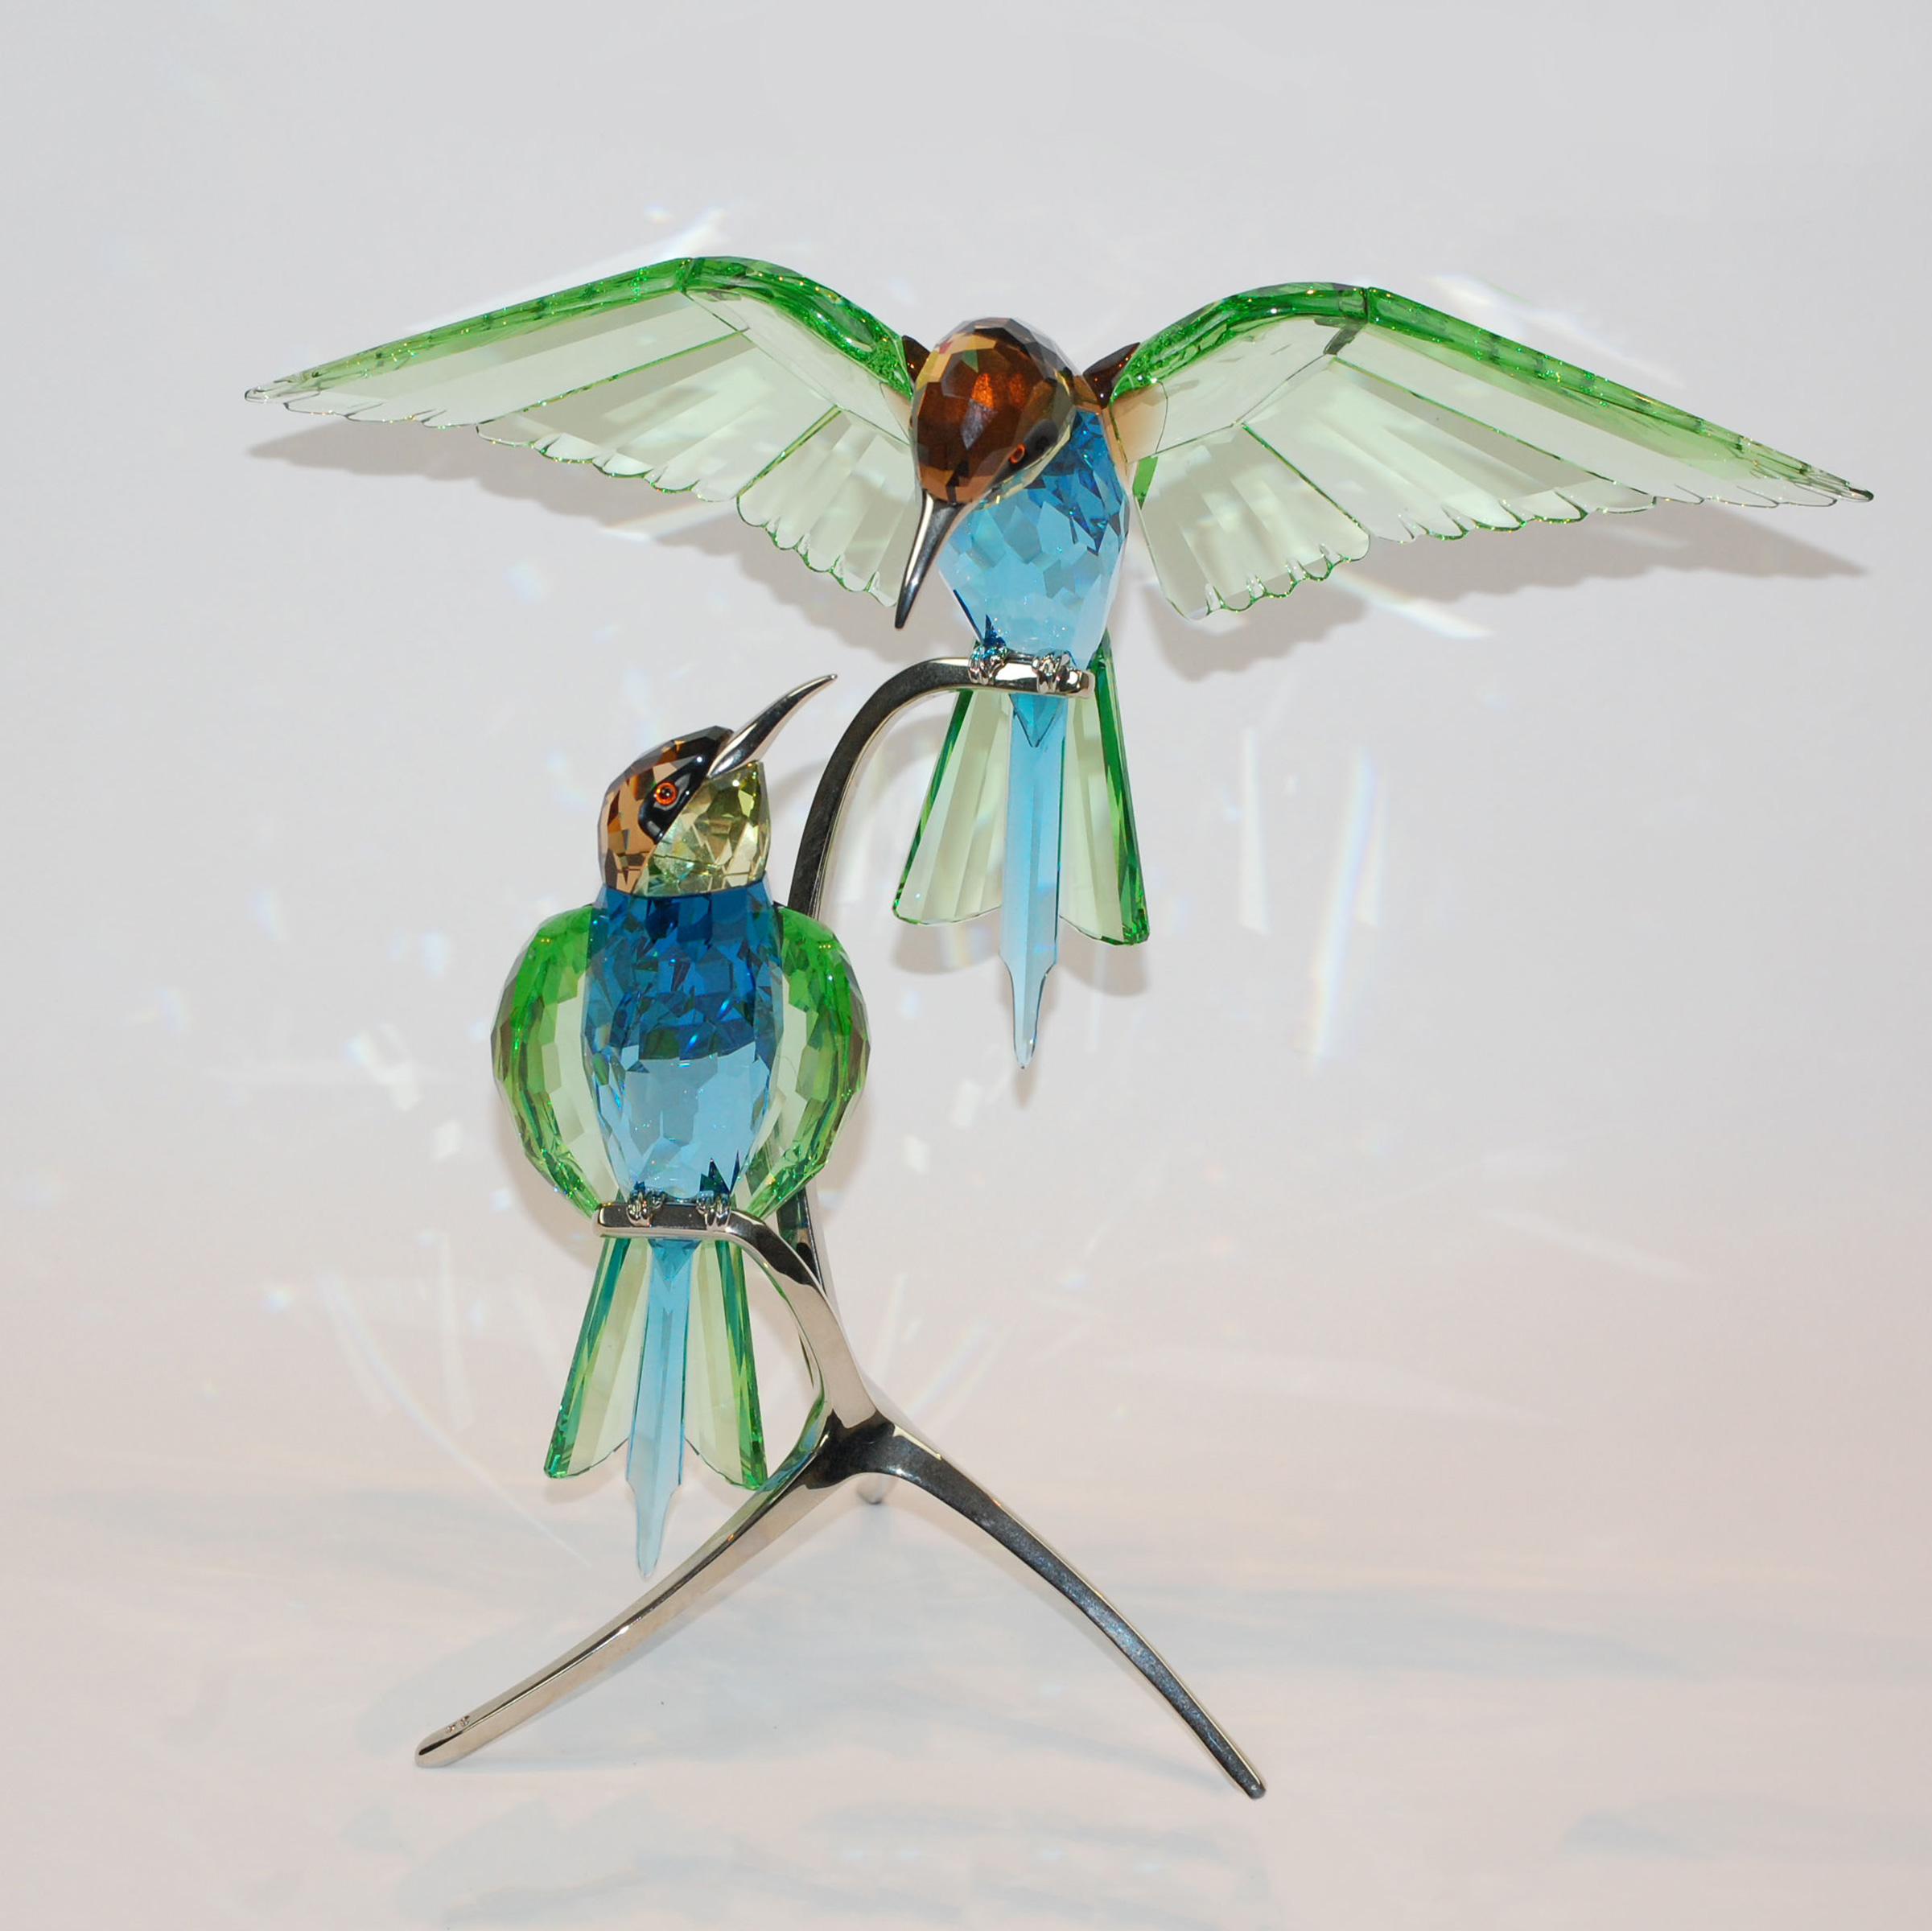 Swarovski Crystal Hummingbirds, early 21st century